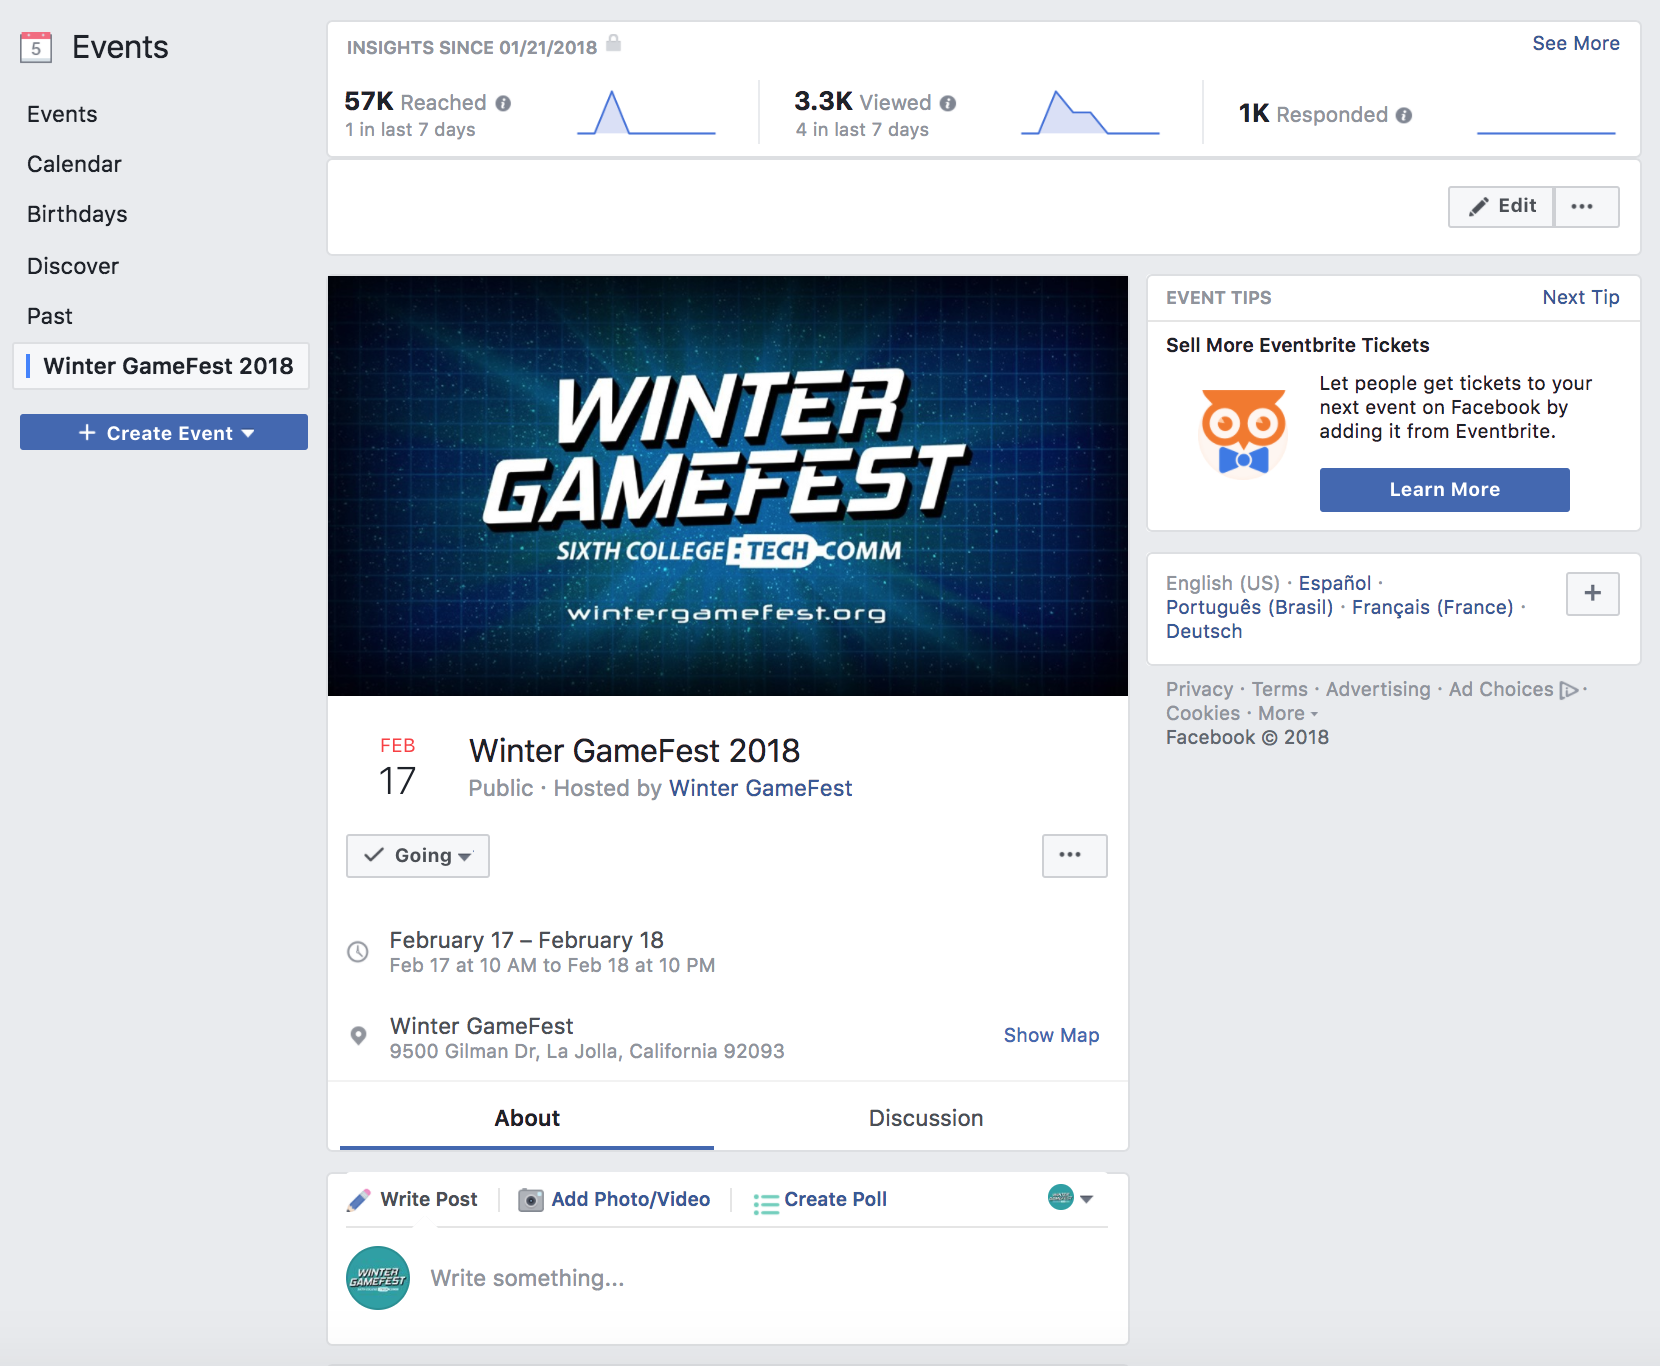 Screenshot of Winter GameFest 2018 Event Page and engagement.